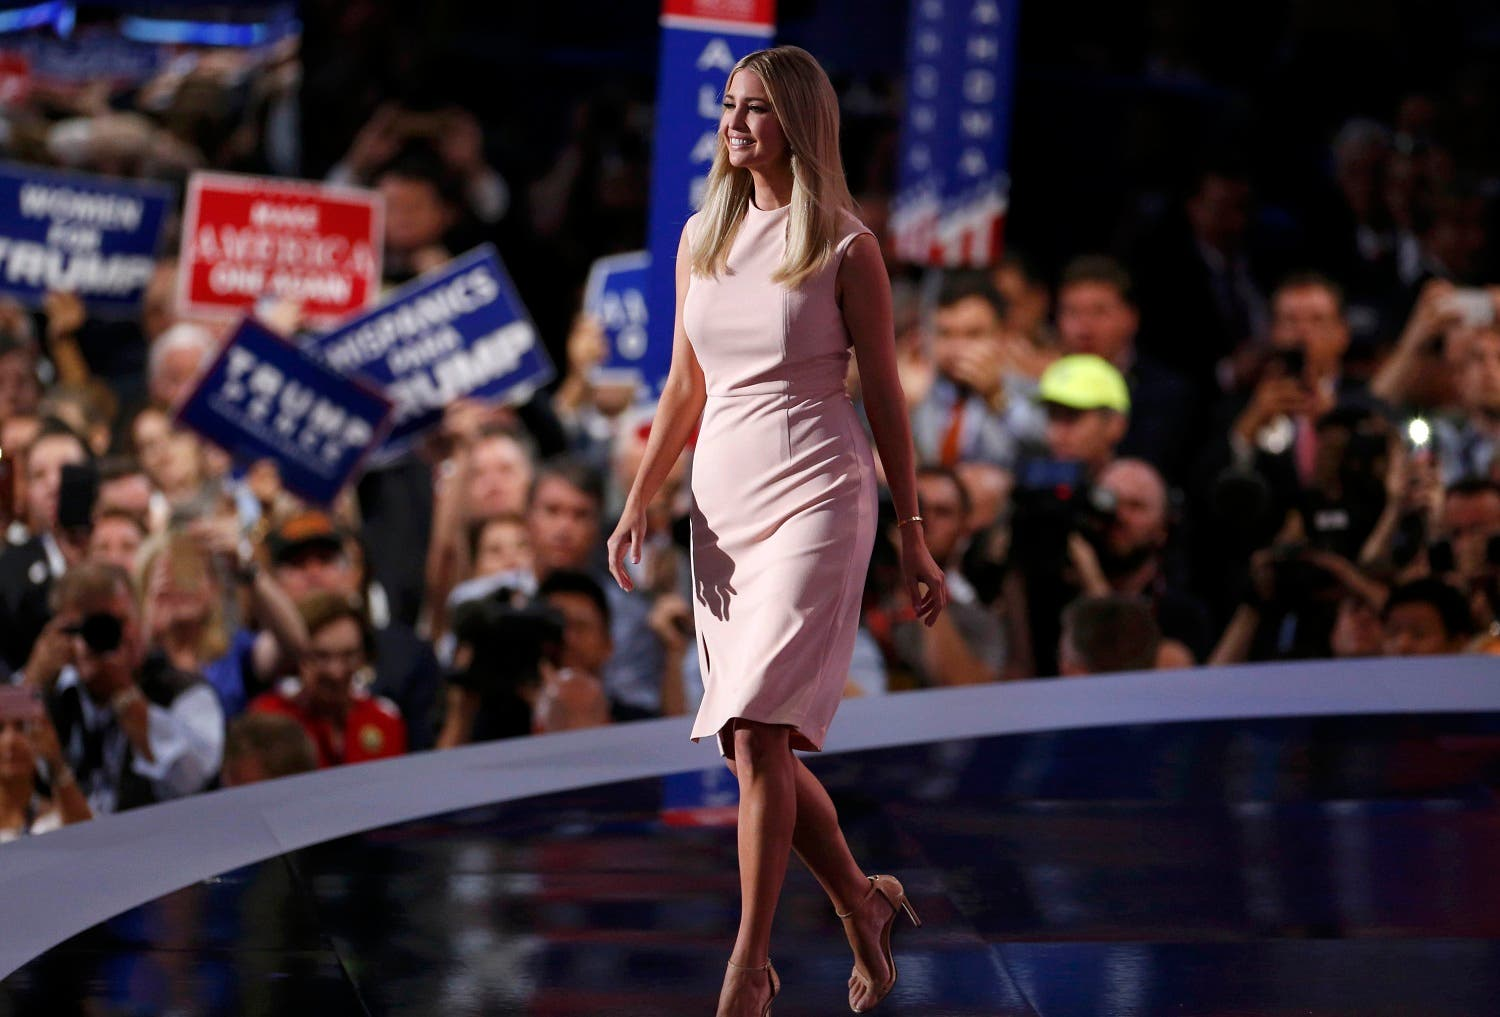 Ivanka Trump, daughter of Republican U.S. presidential nominee Donald Trump, speaks during the final session at the Republican National Convention in Cleveland, Ohio, U.S. July 21, 2016. REUTERS